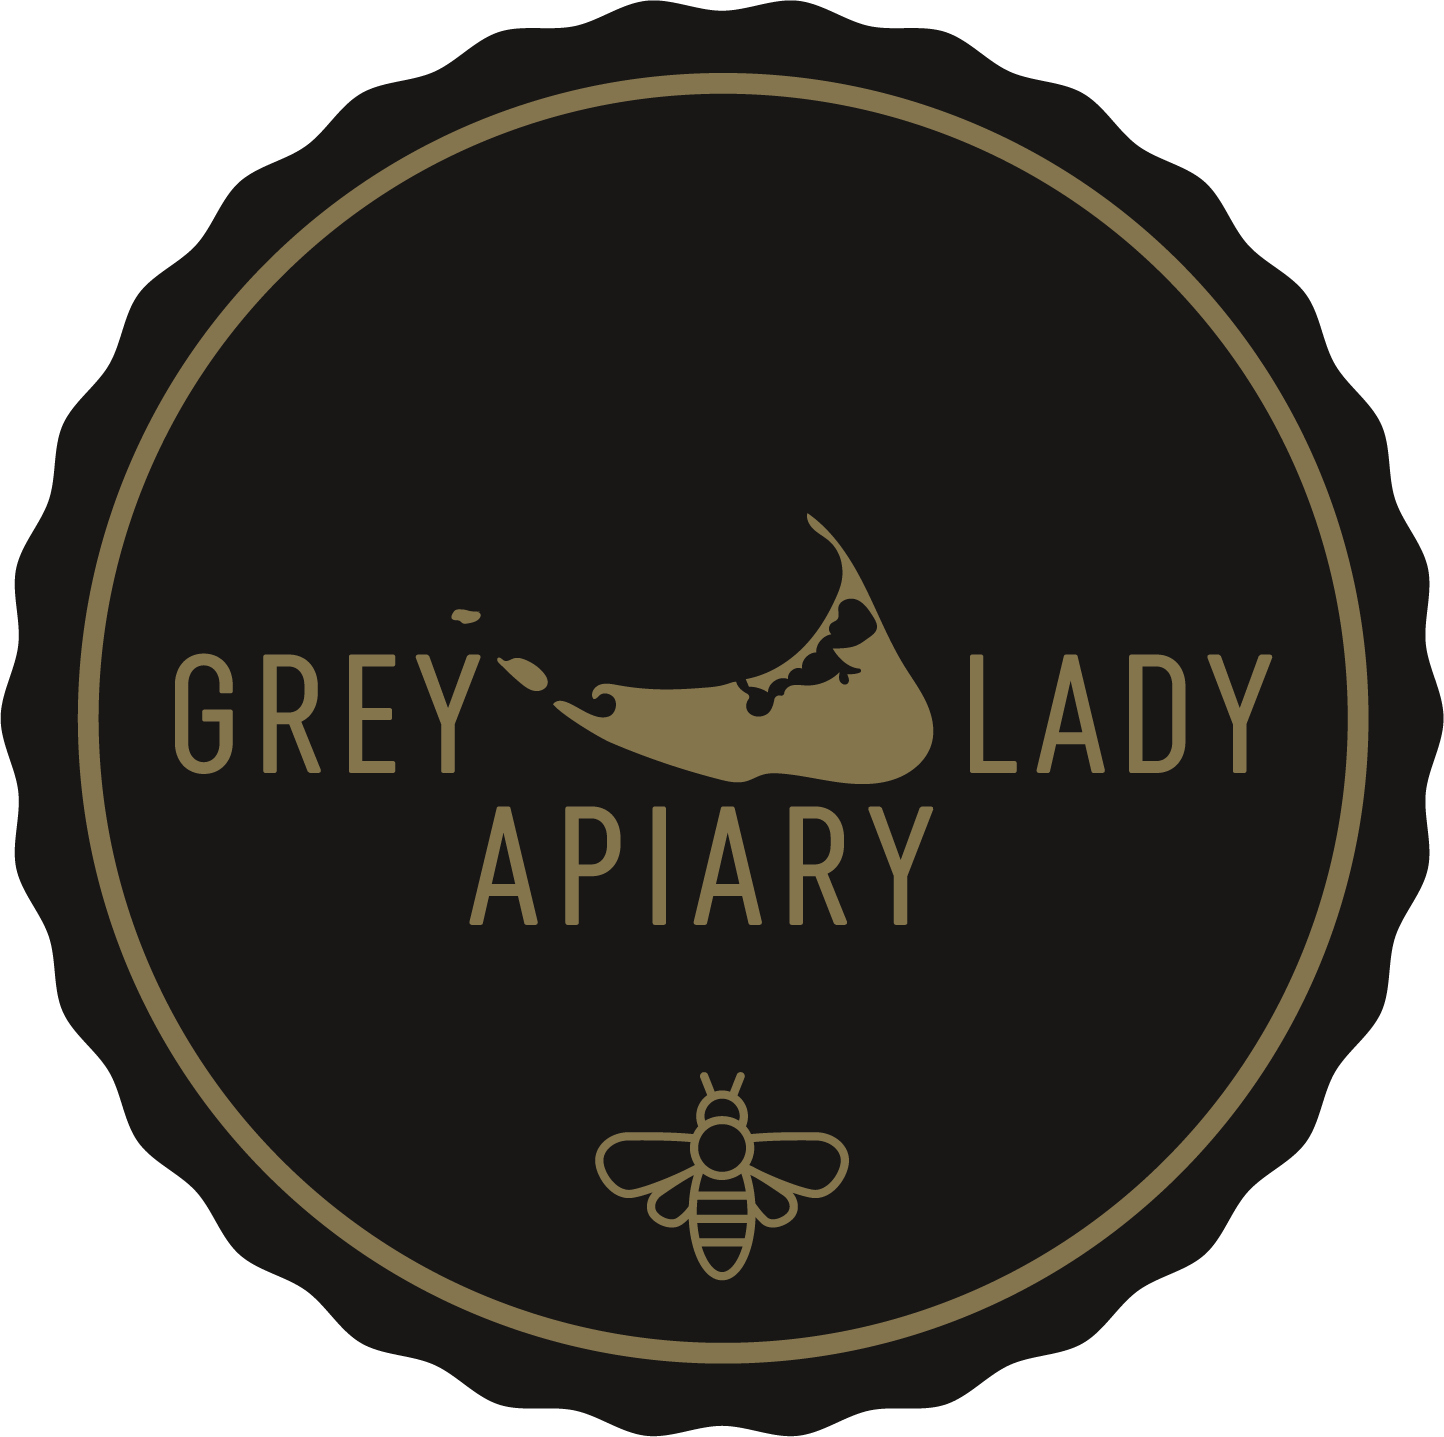 Grey Lady Apiary